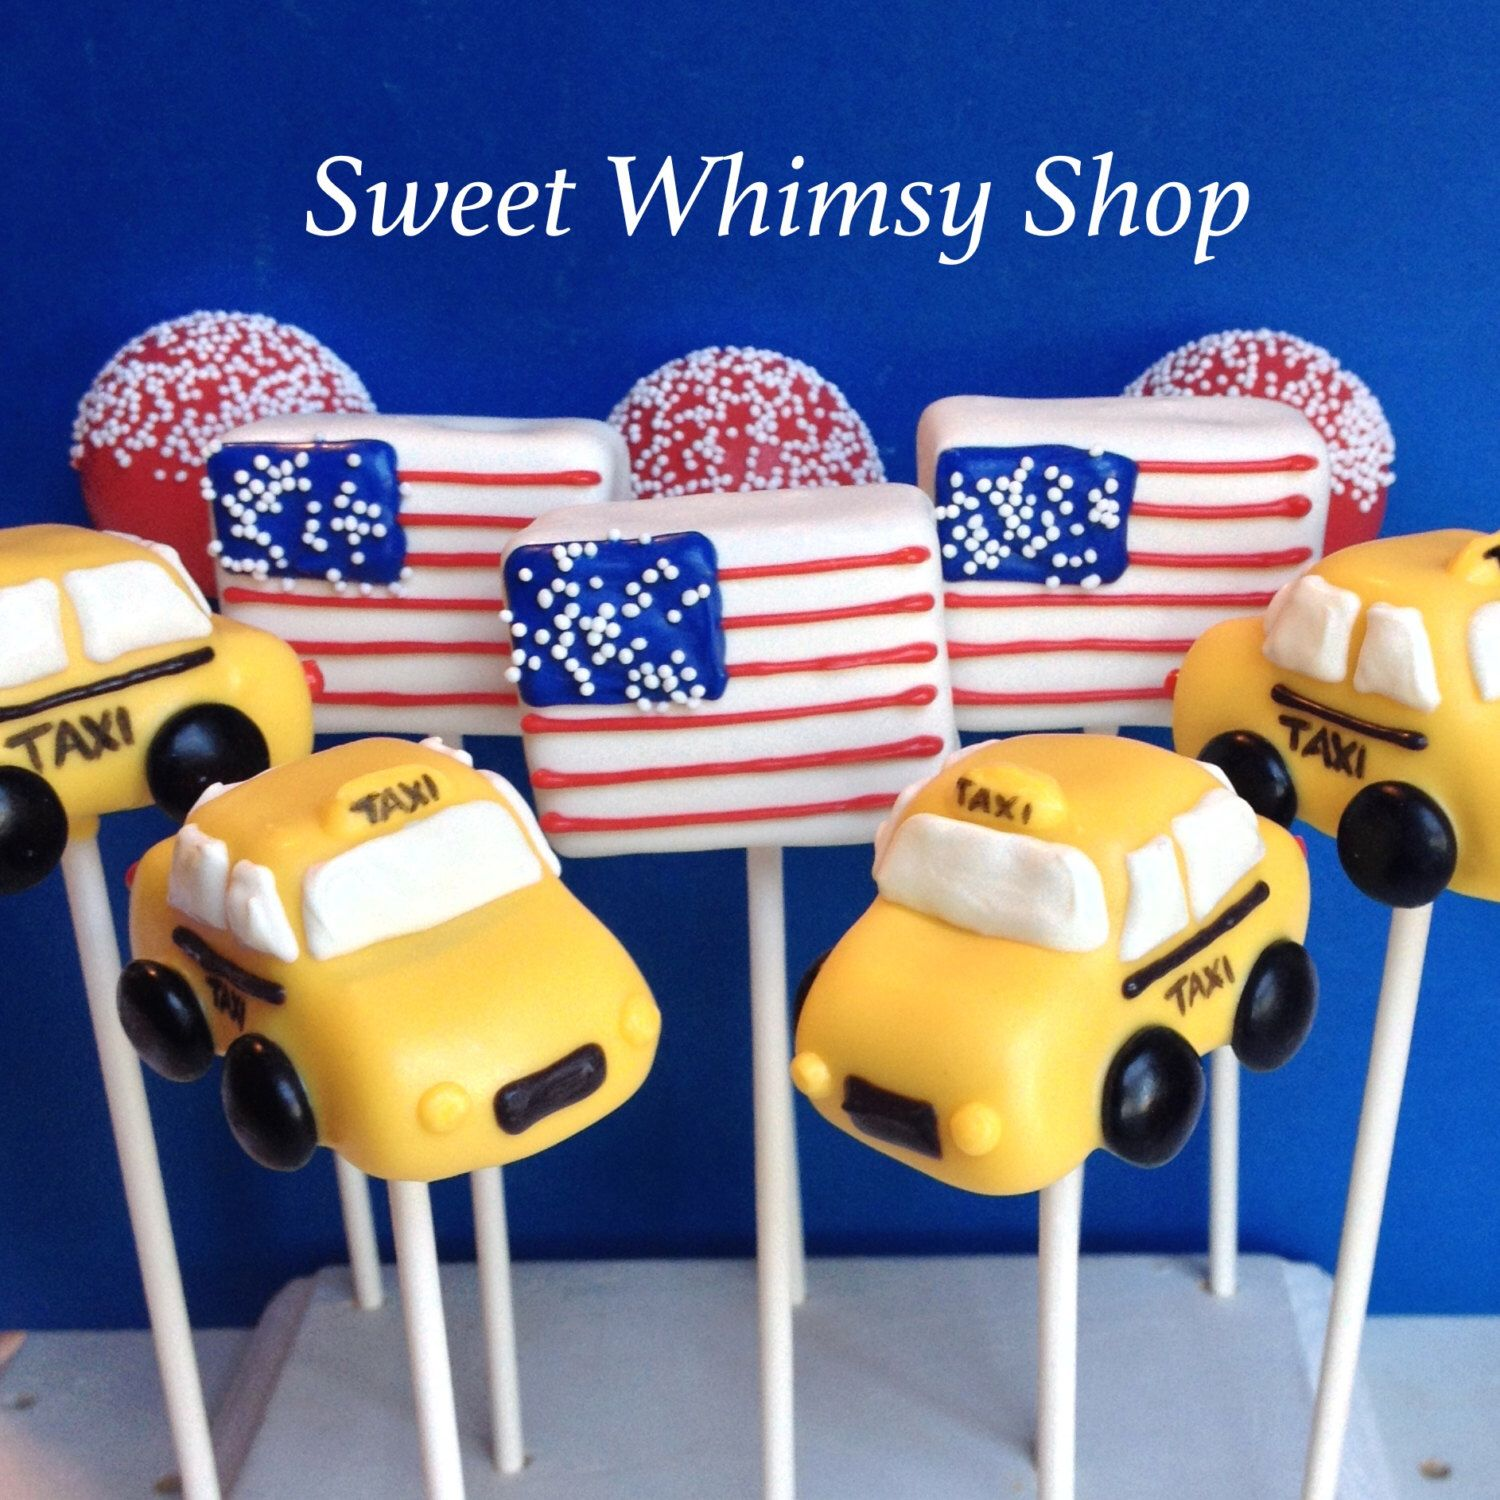 12 NYC Taxi & American Flag Cake Pops For New York Wedding